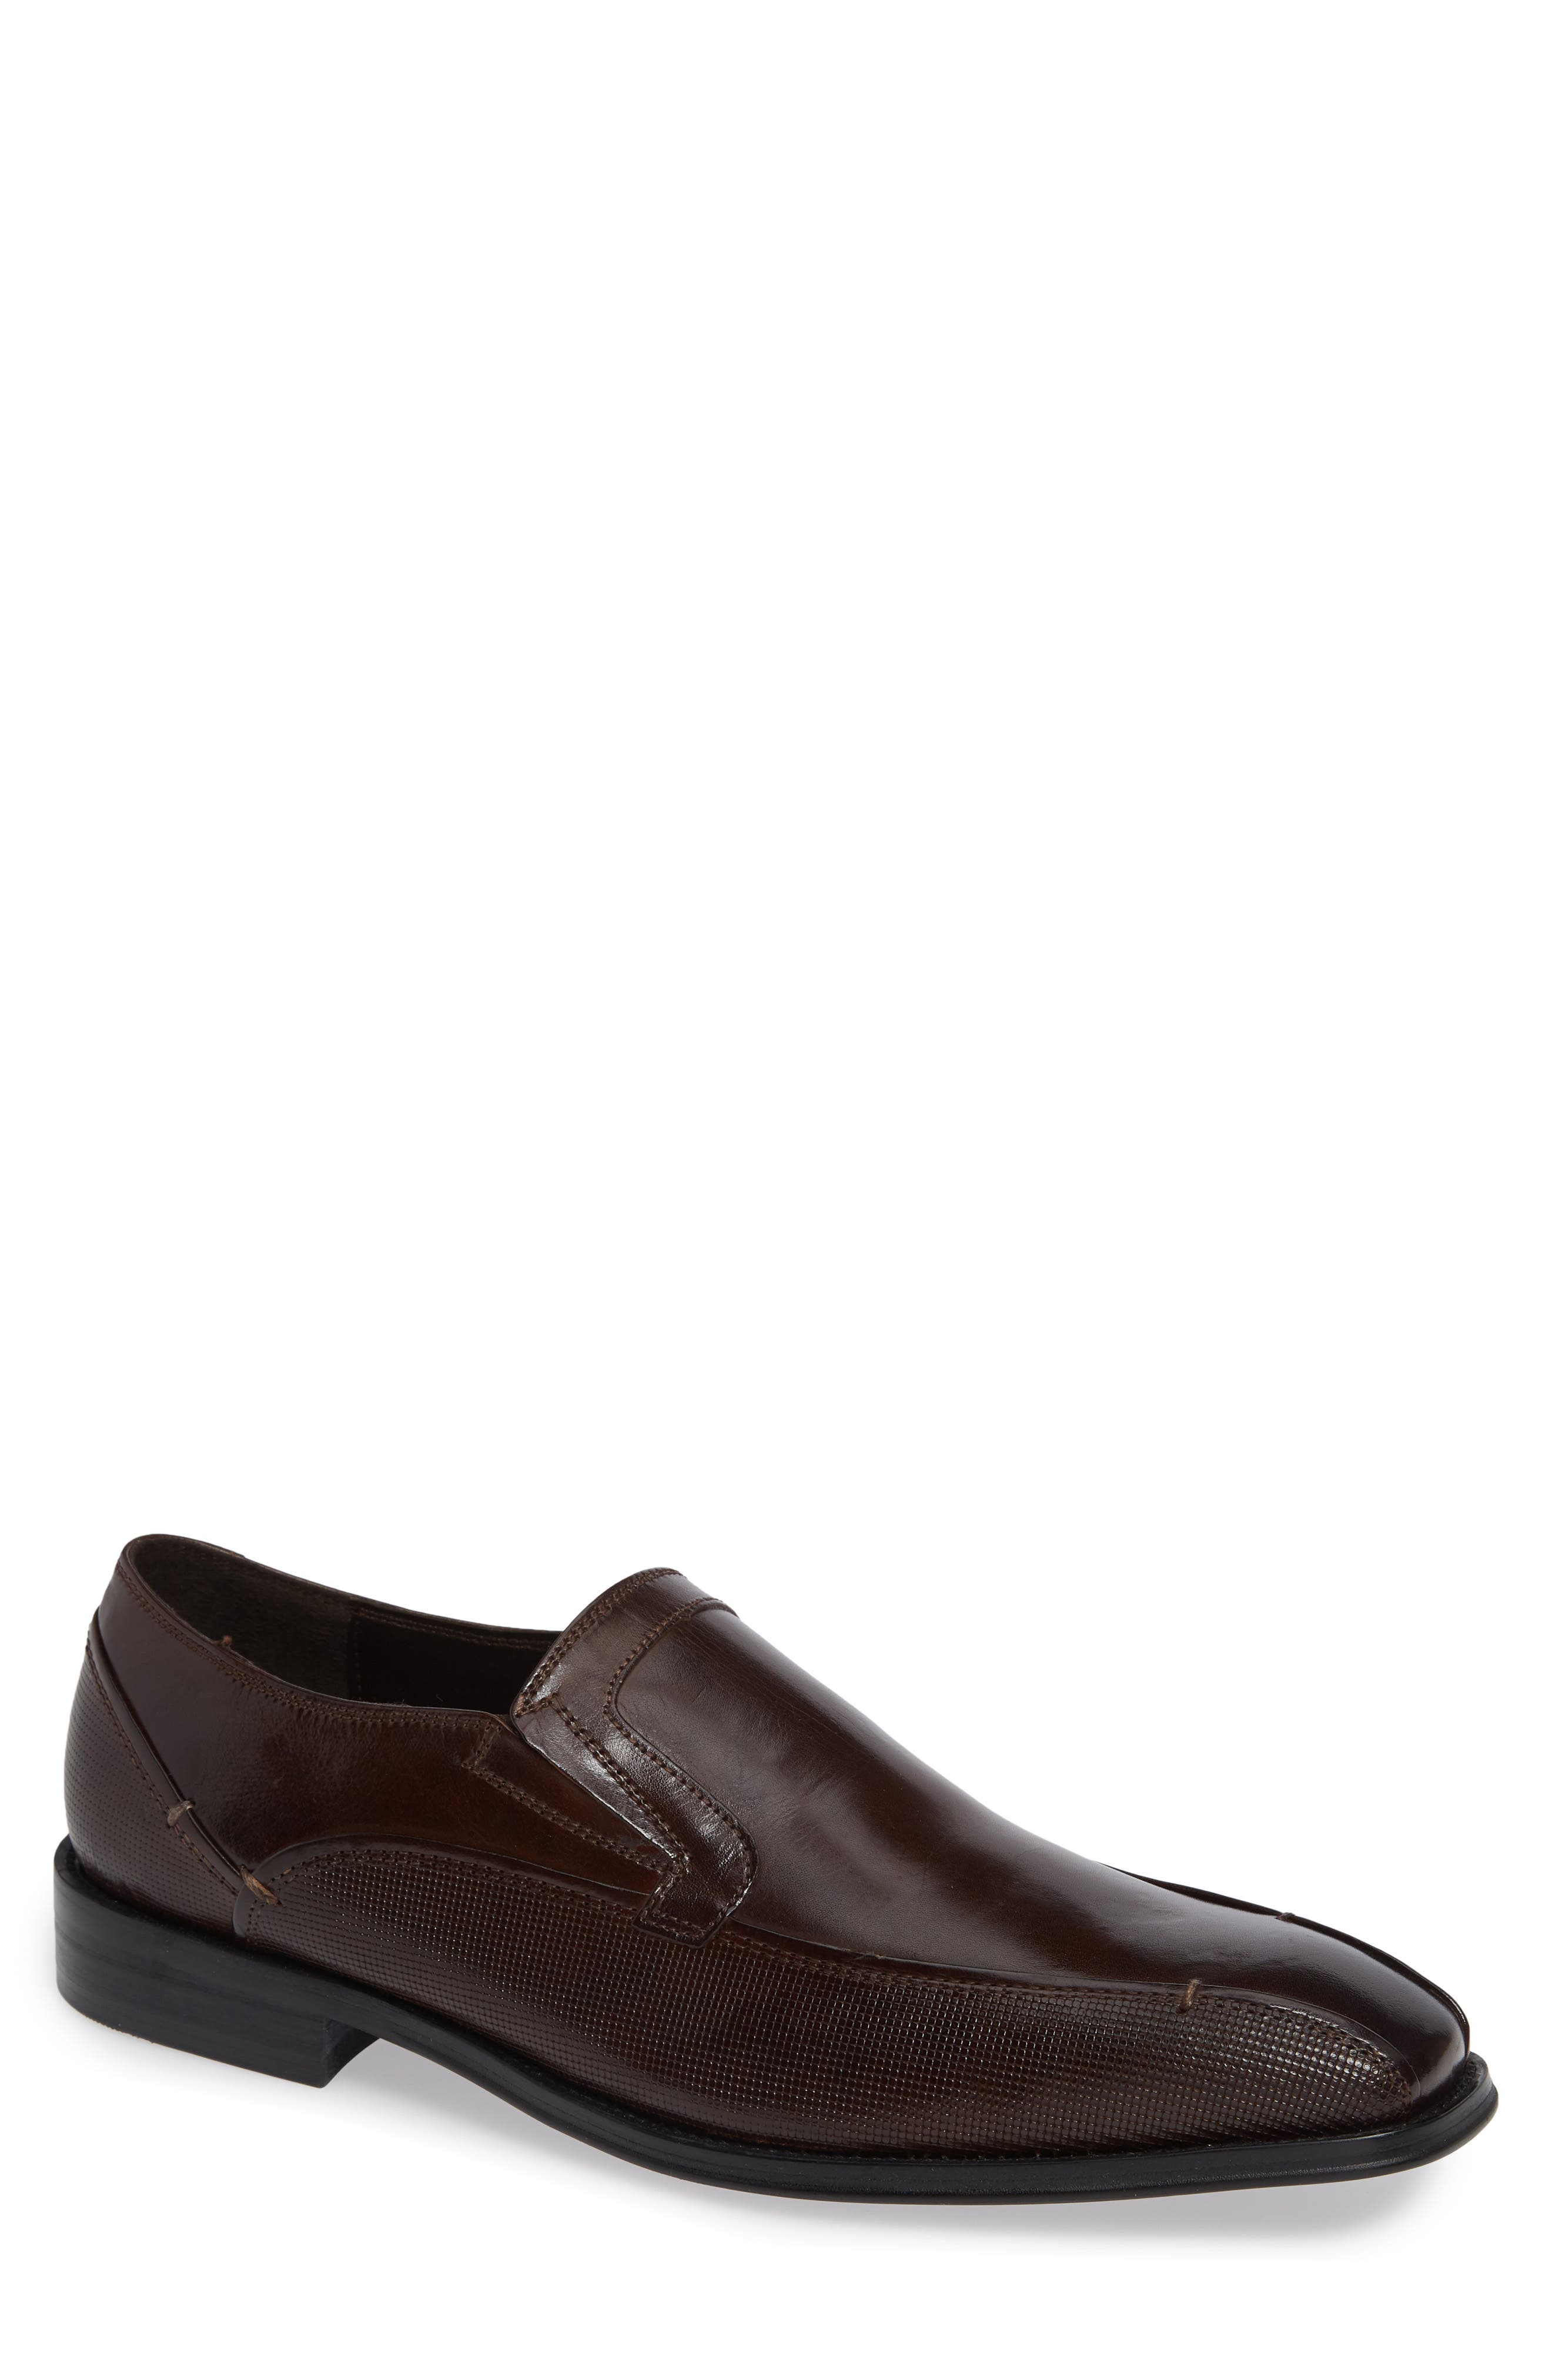 Witter Bike Toe Loafer,                         Main,                         color, BROWN LEATHER